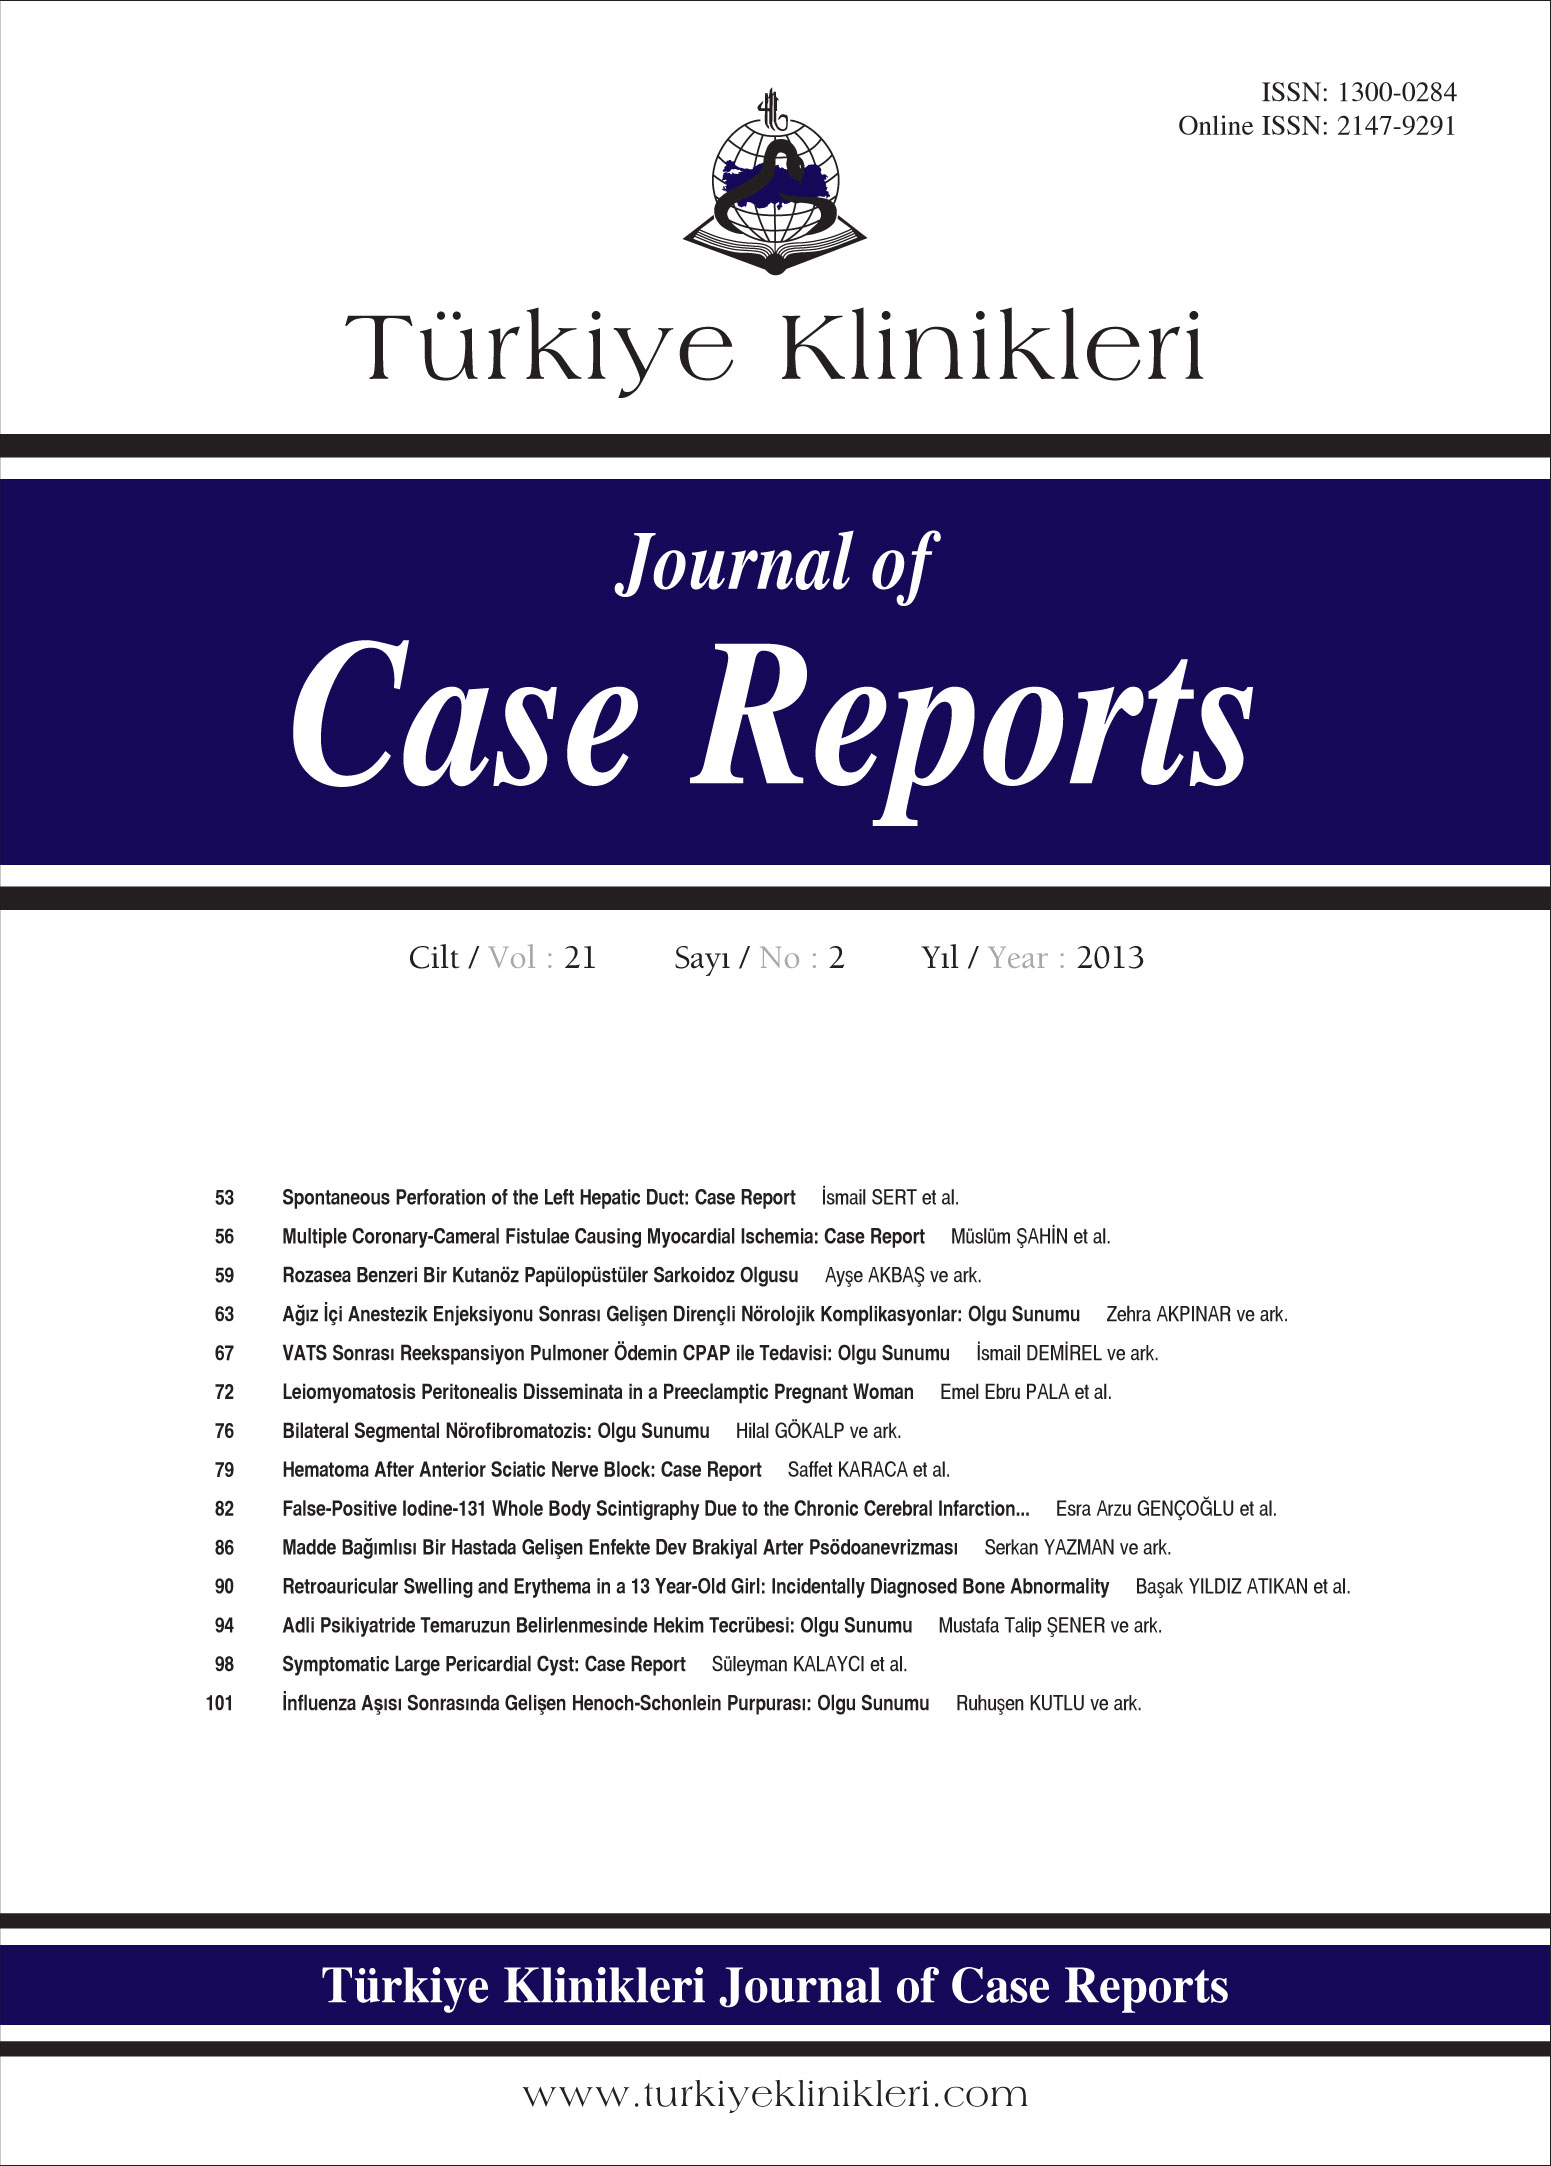 case report 2 2 case reports should describe an original observation concerning diagnosis,  treatment or both  case reports should be sent by email to mircim secretariat .